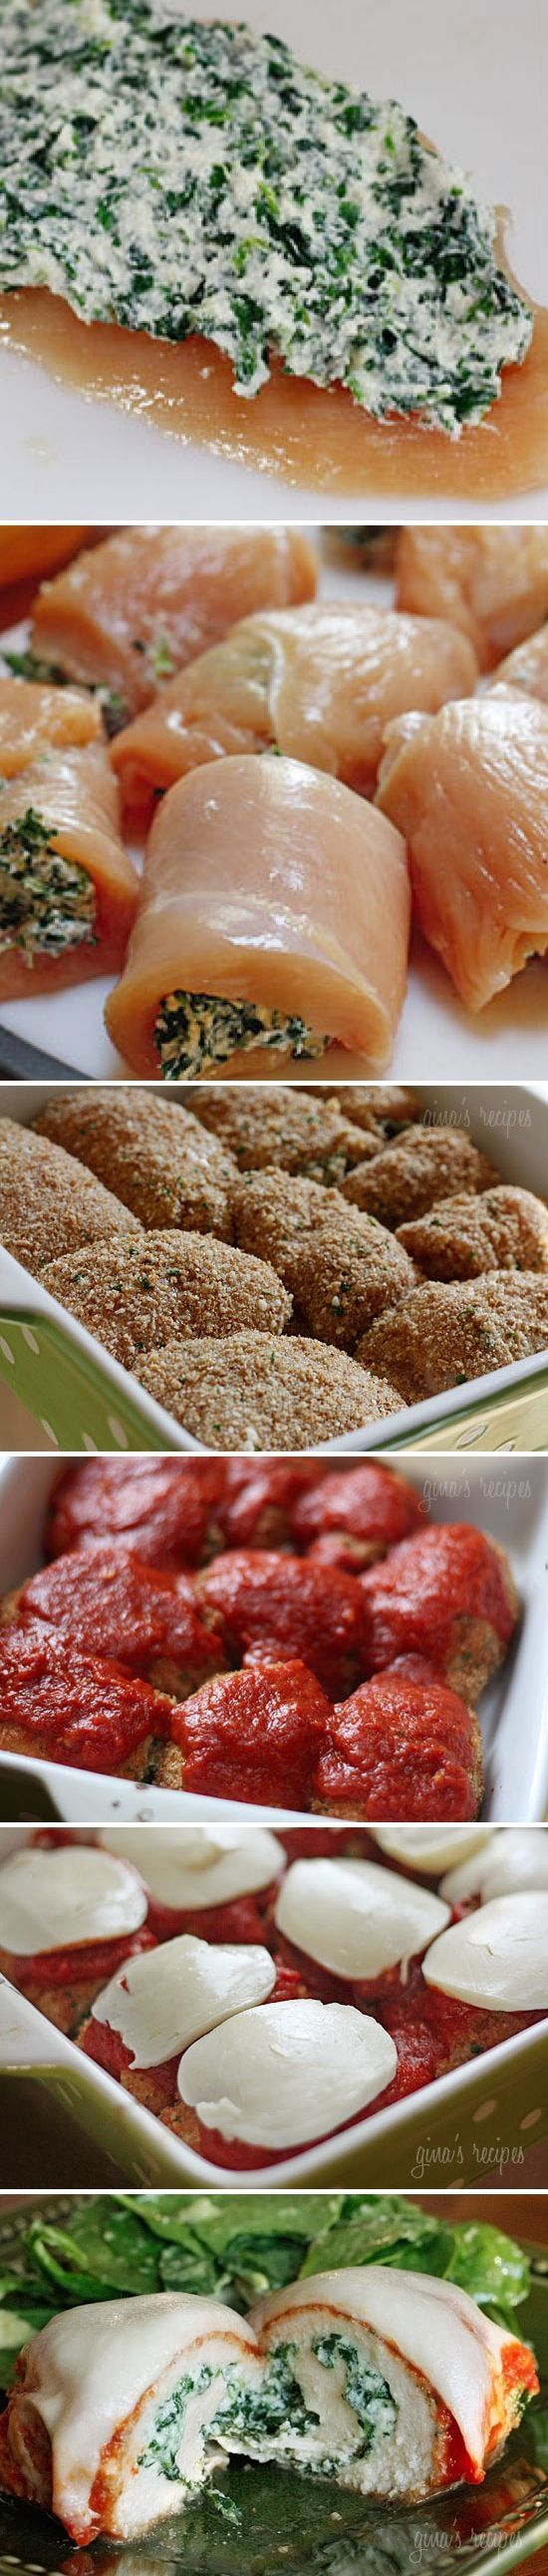 chicken stuffed with spinach and a yummy cheese mixture then coat them with bread crumbs and top them with more cheese CLICK FOR FULL RECIPE - Pinterest makes us hungry!